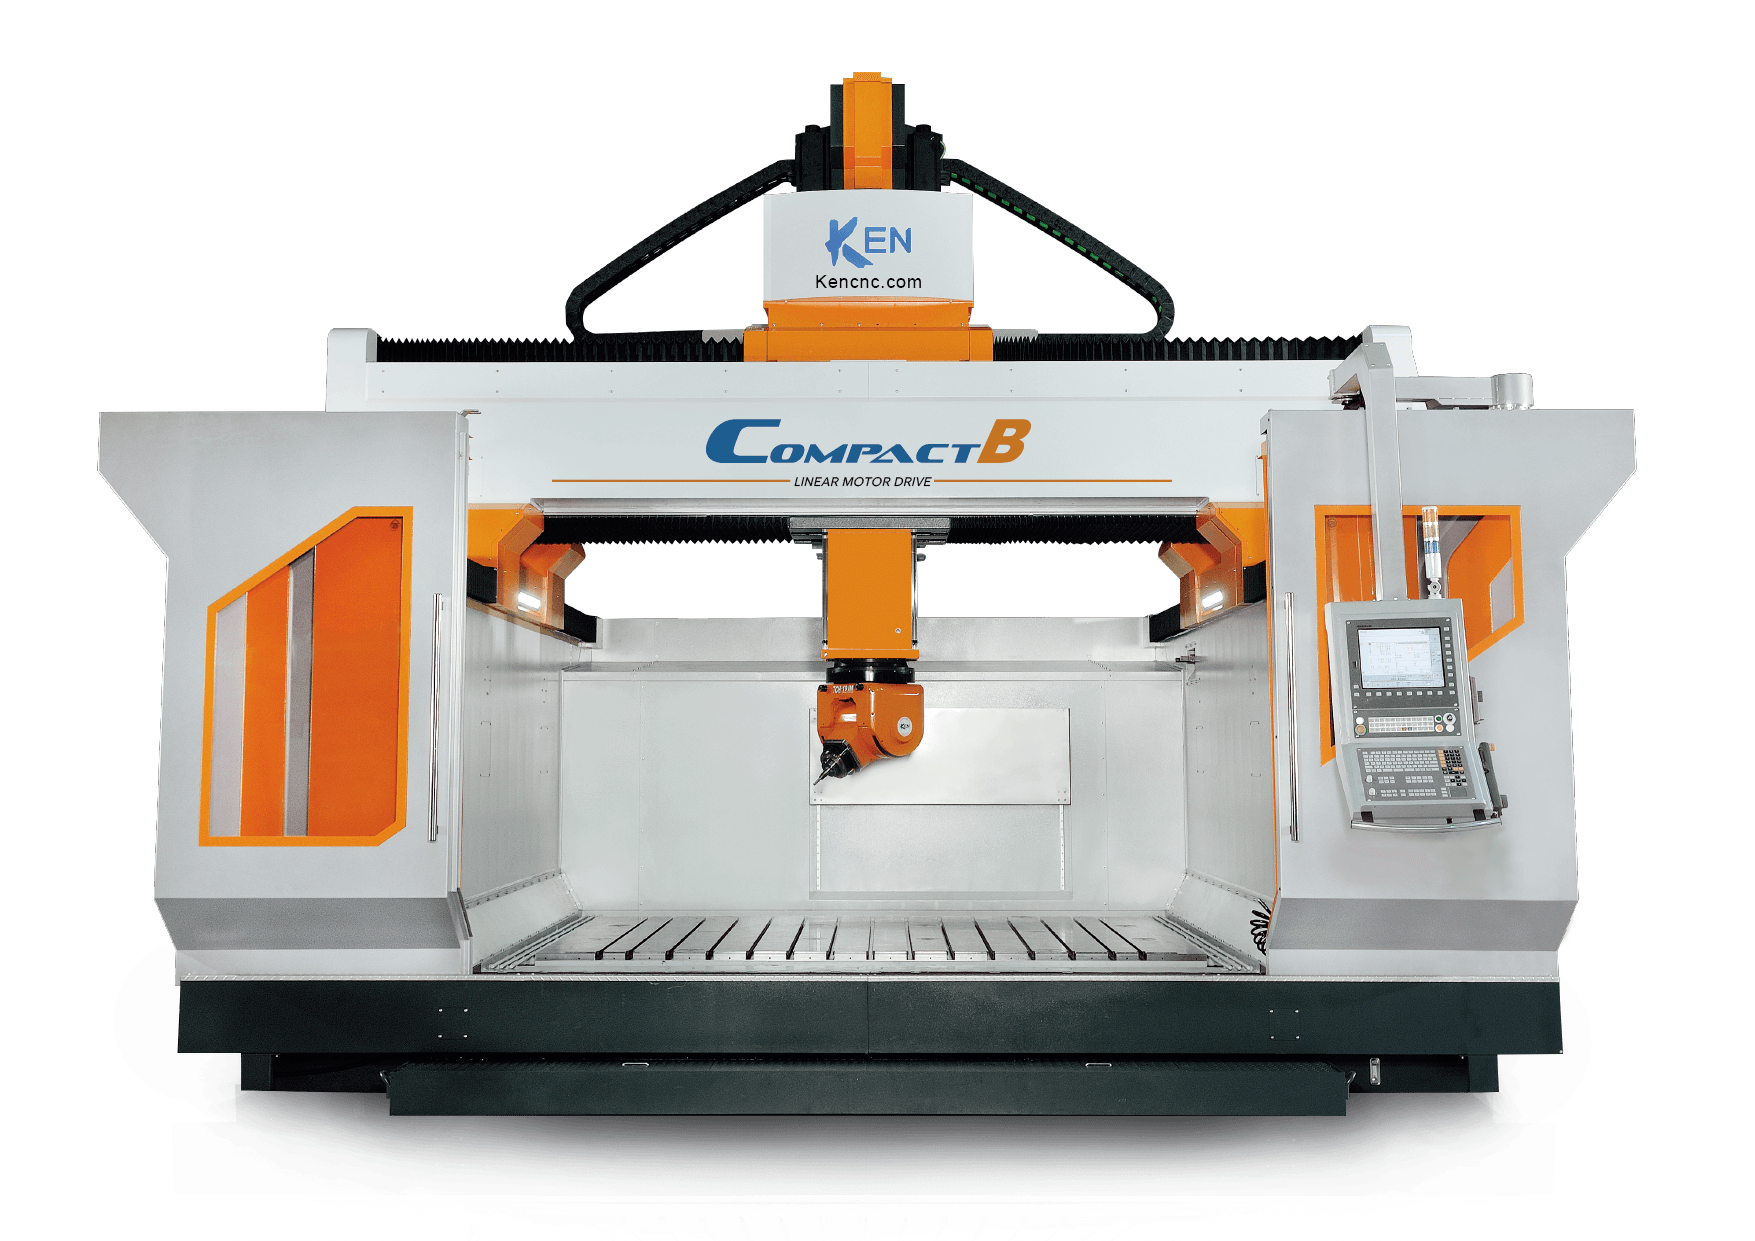 Gantry Type High Speed 5-Axis Machine Center(CompactB)